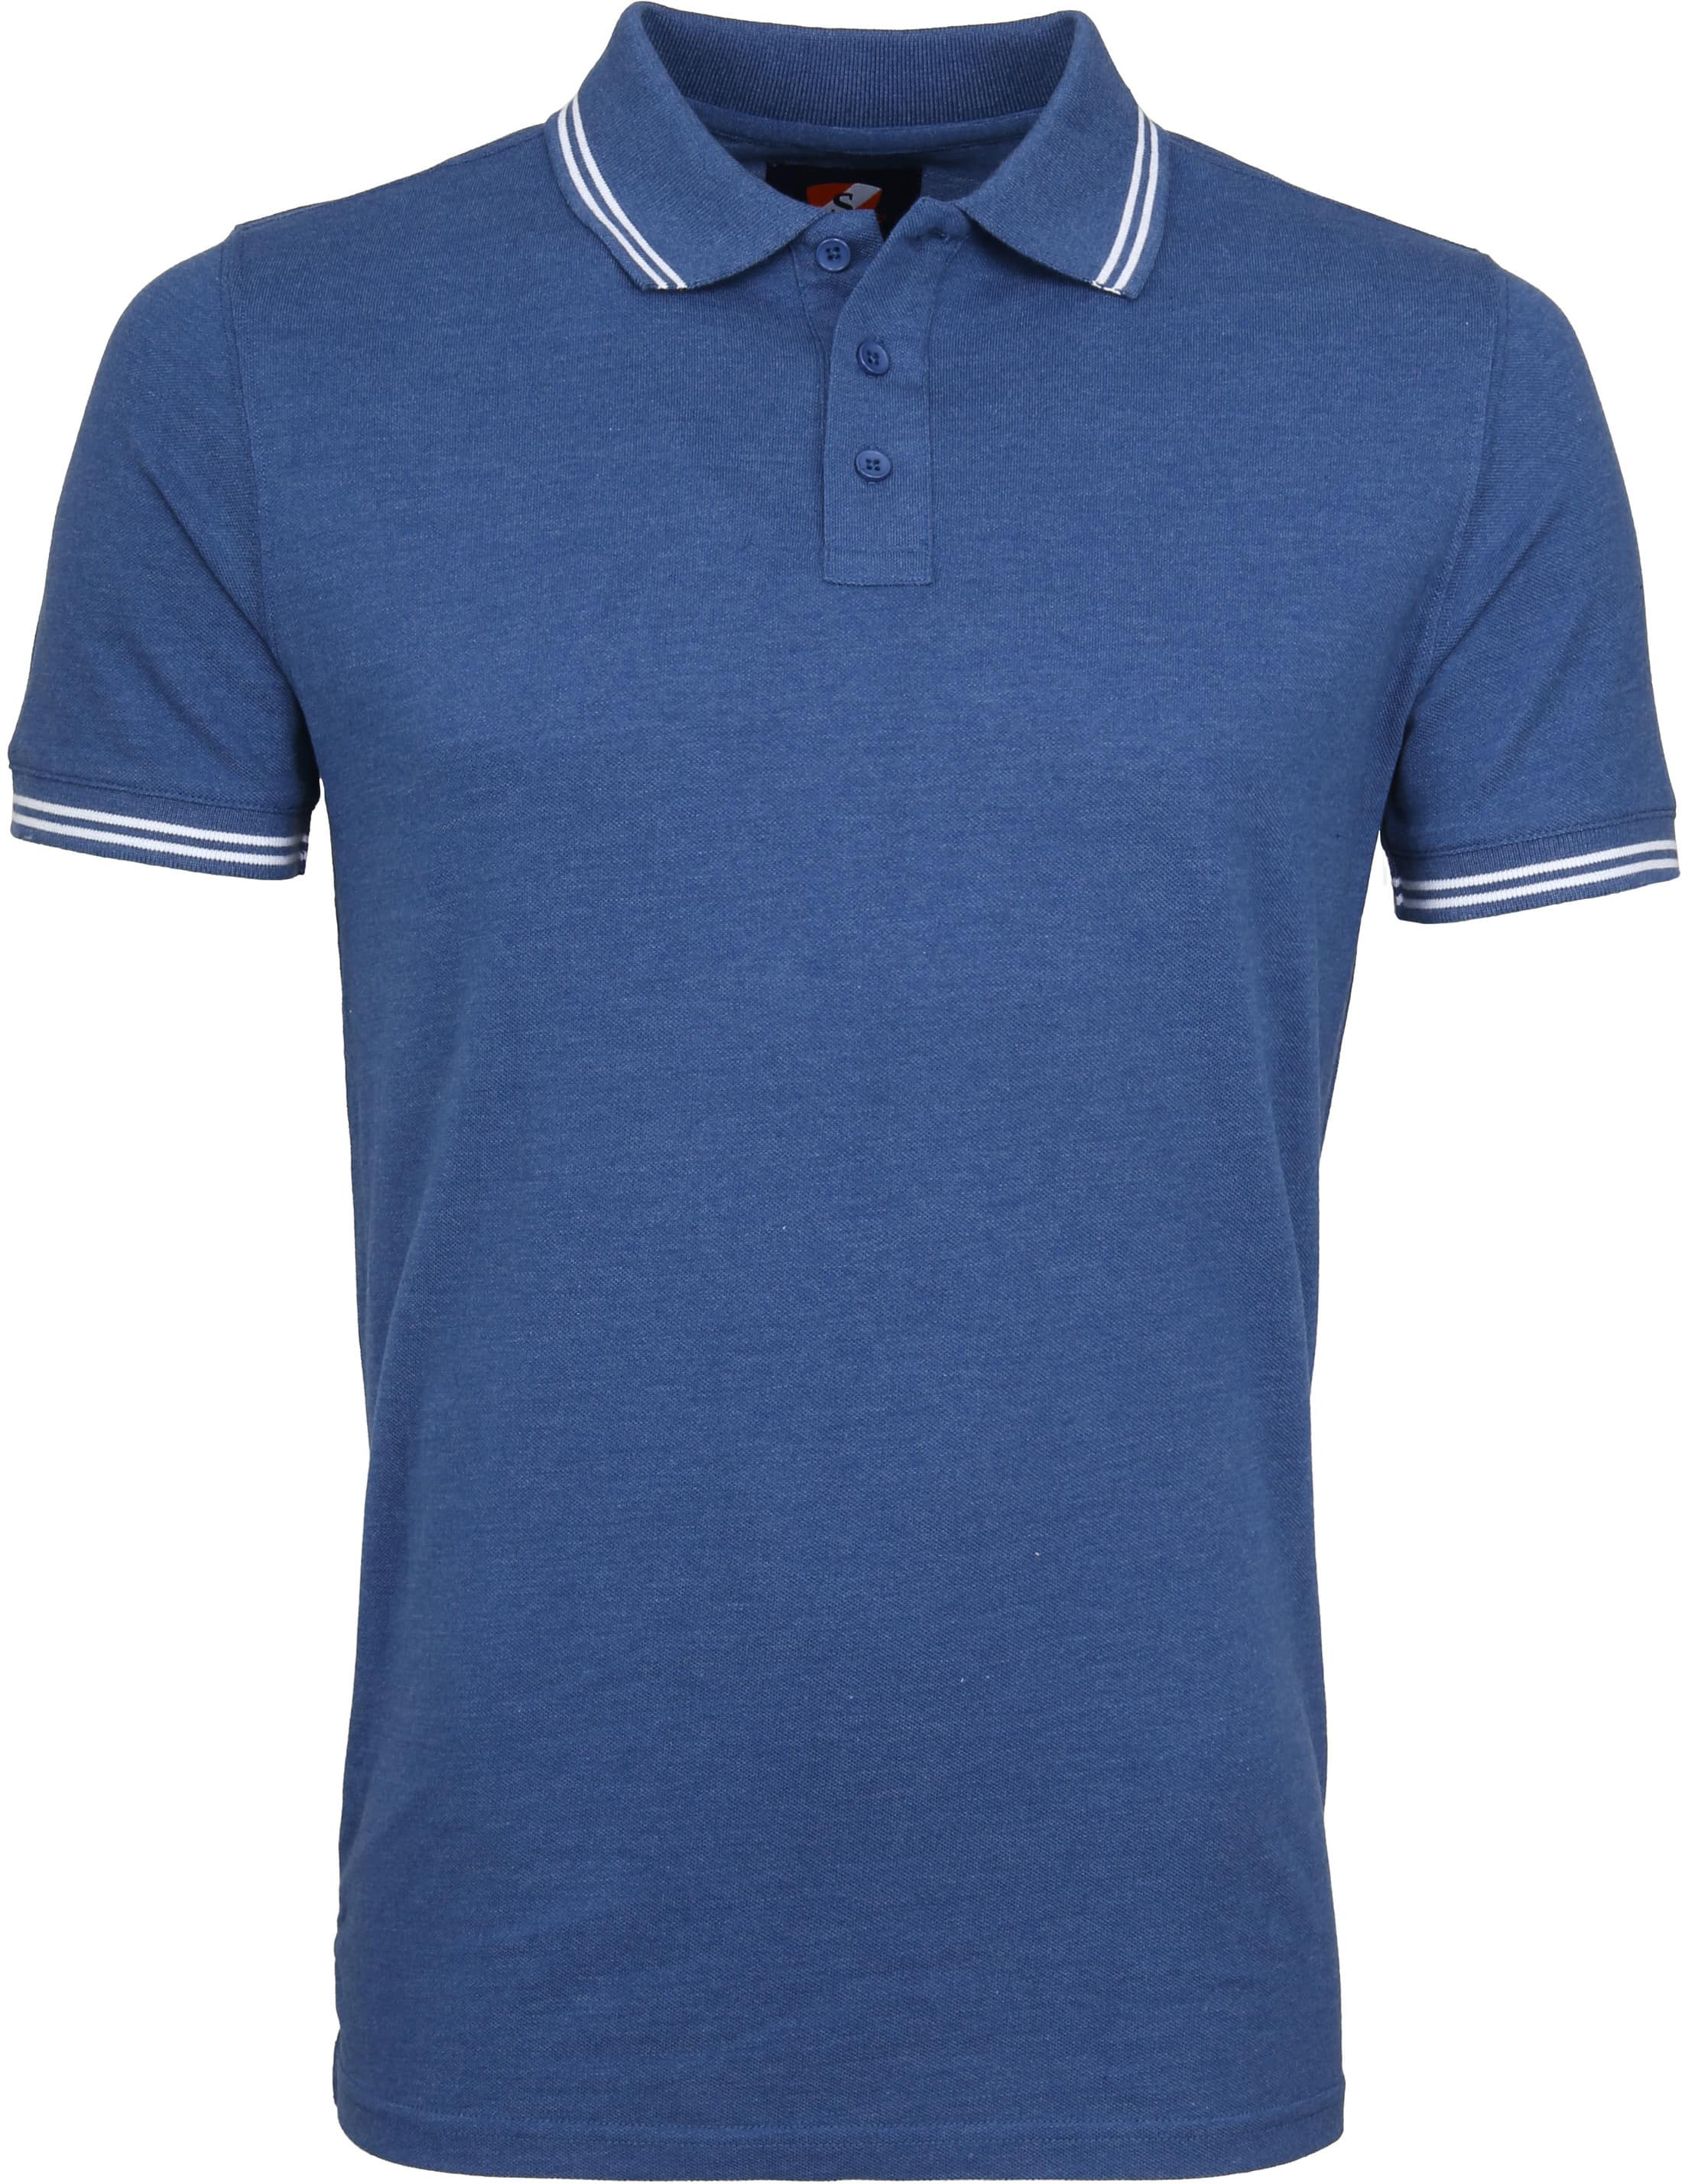 Suitable Chipp Poloshirt Blue foto 0